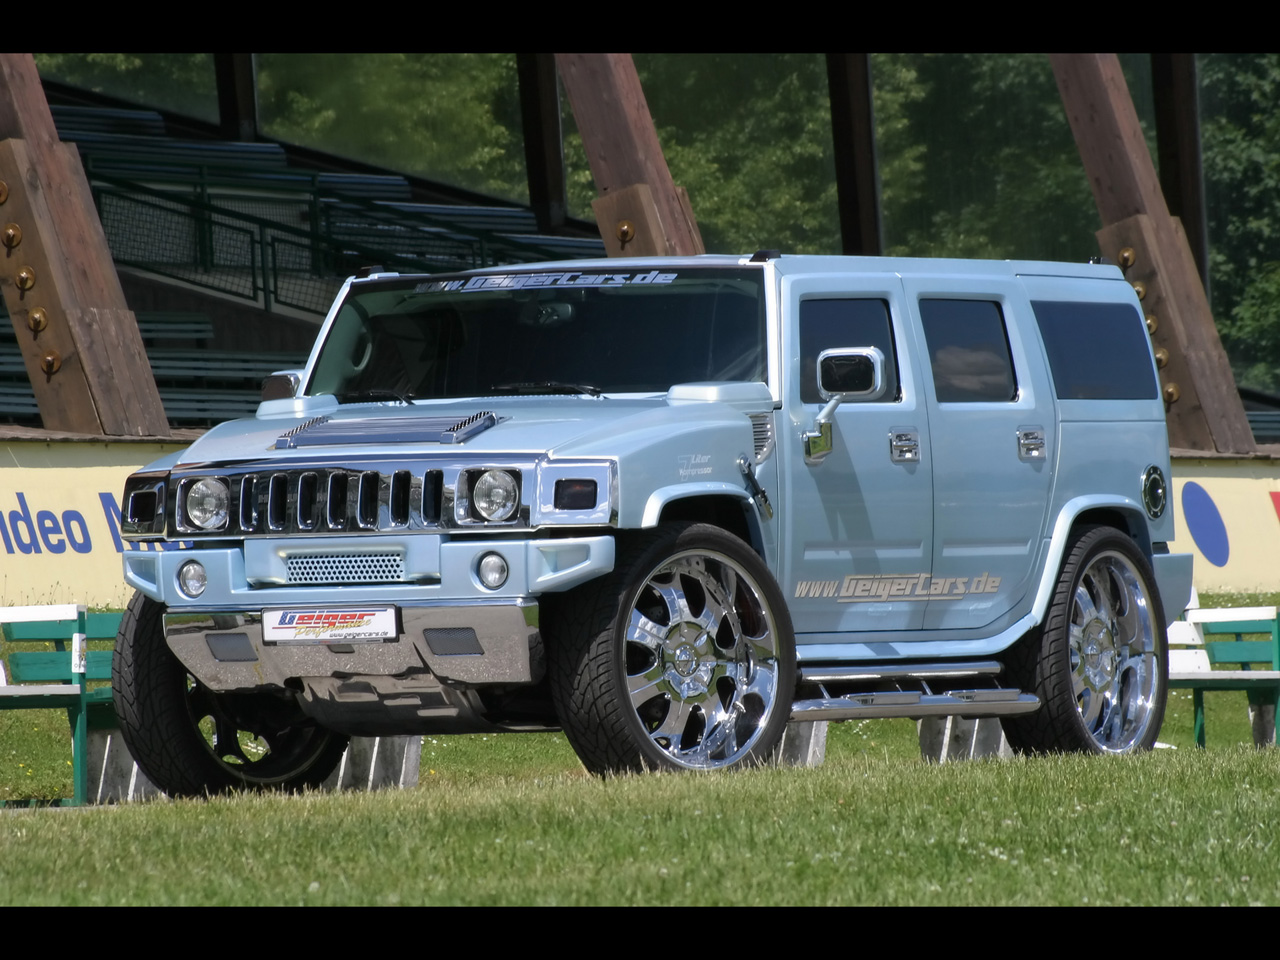 hummer h2 wallpapers download new hd wallon. Black Bedroom Furniture Sets. Home Design Ideas